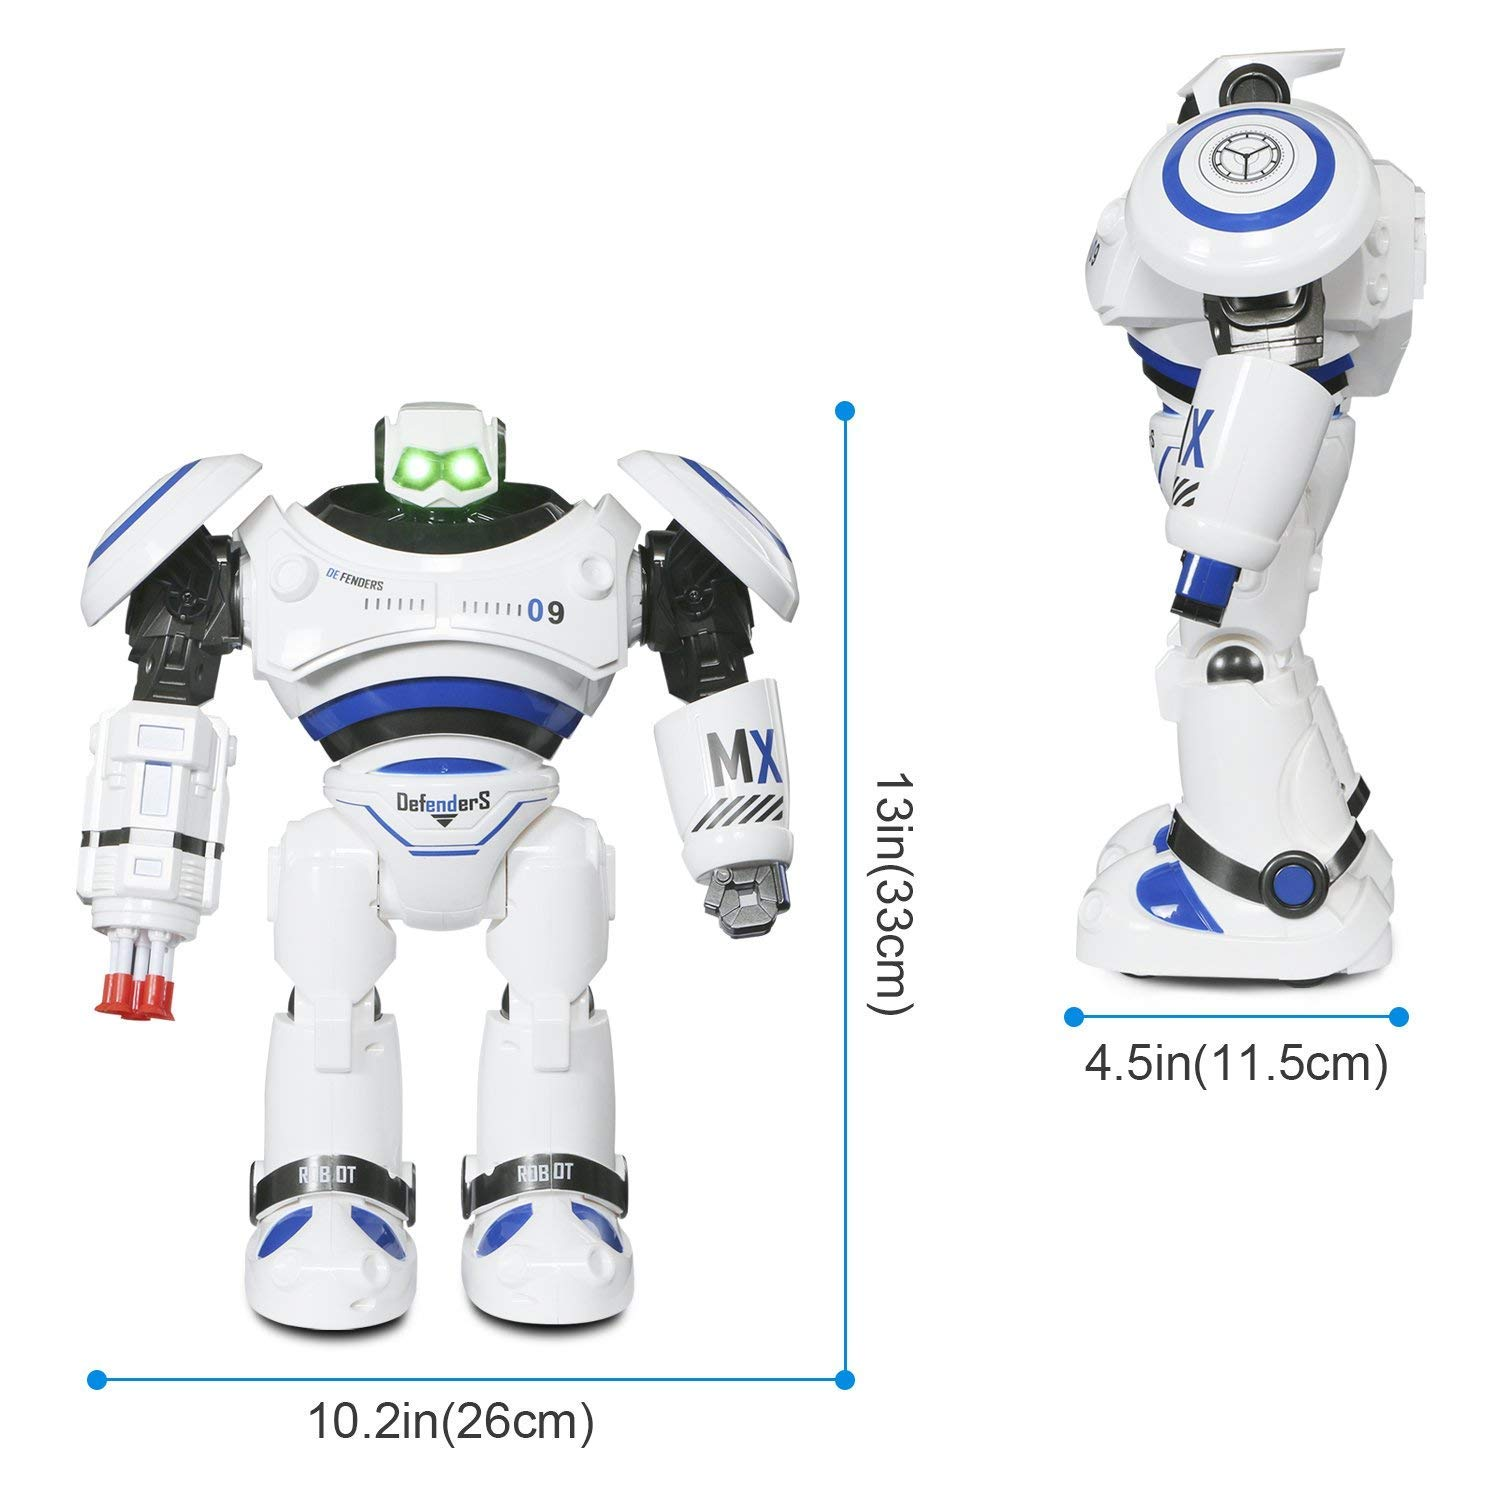 Large Robot Toy, Remote Control RC Combat Fighting Robot for Kids Birthday Present Gift, Dancing Shooting Infrared Sensing Robot for Kids Boy Girl by Toch (Image #6)